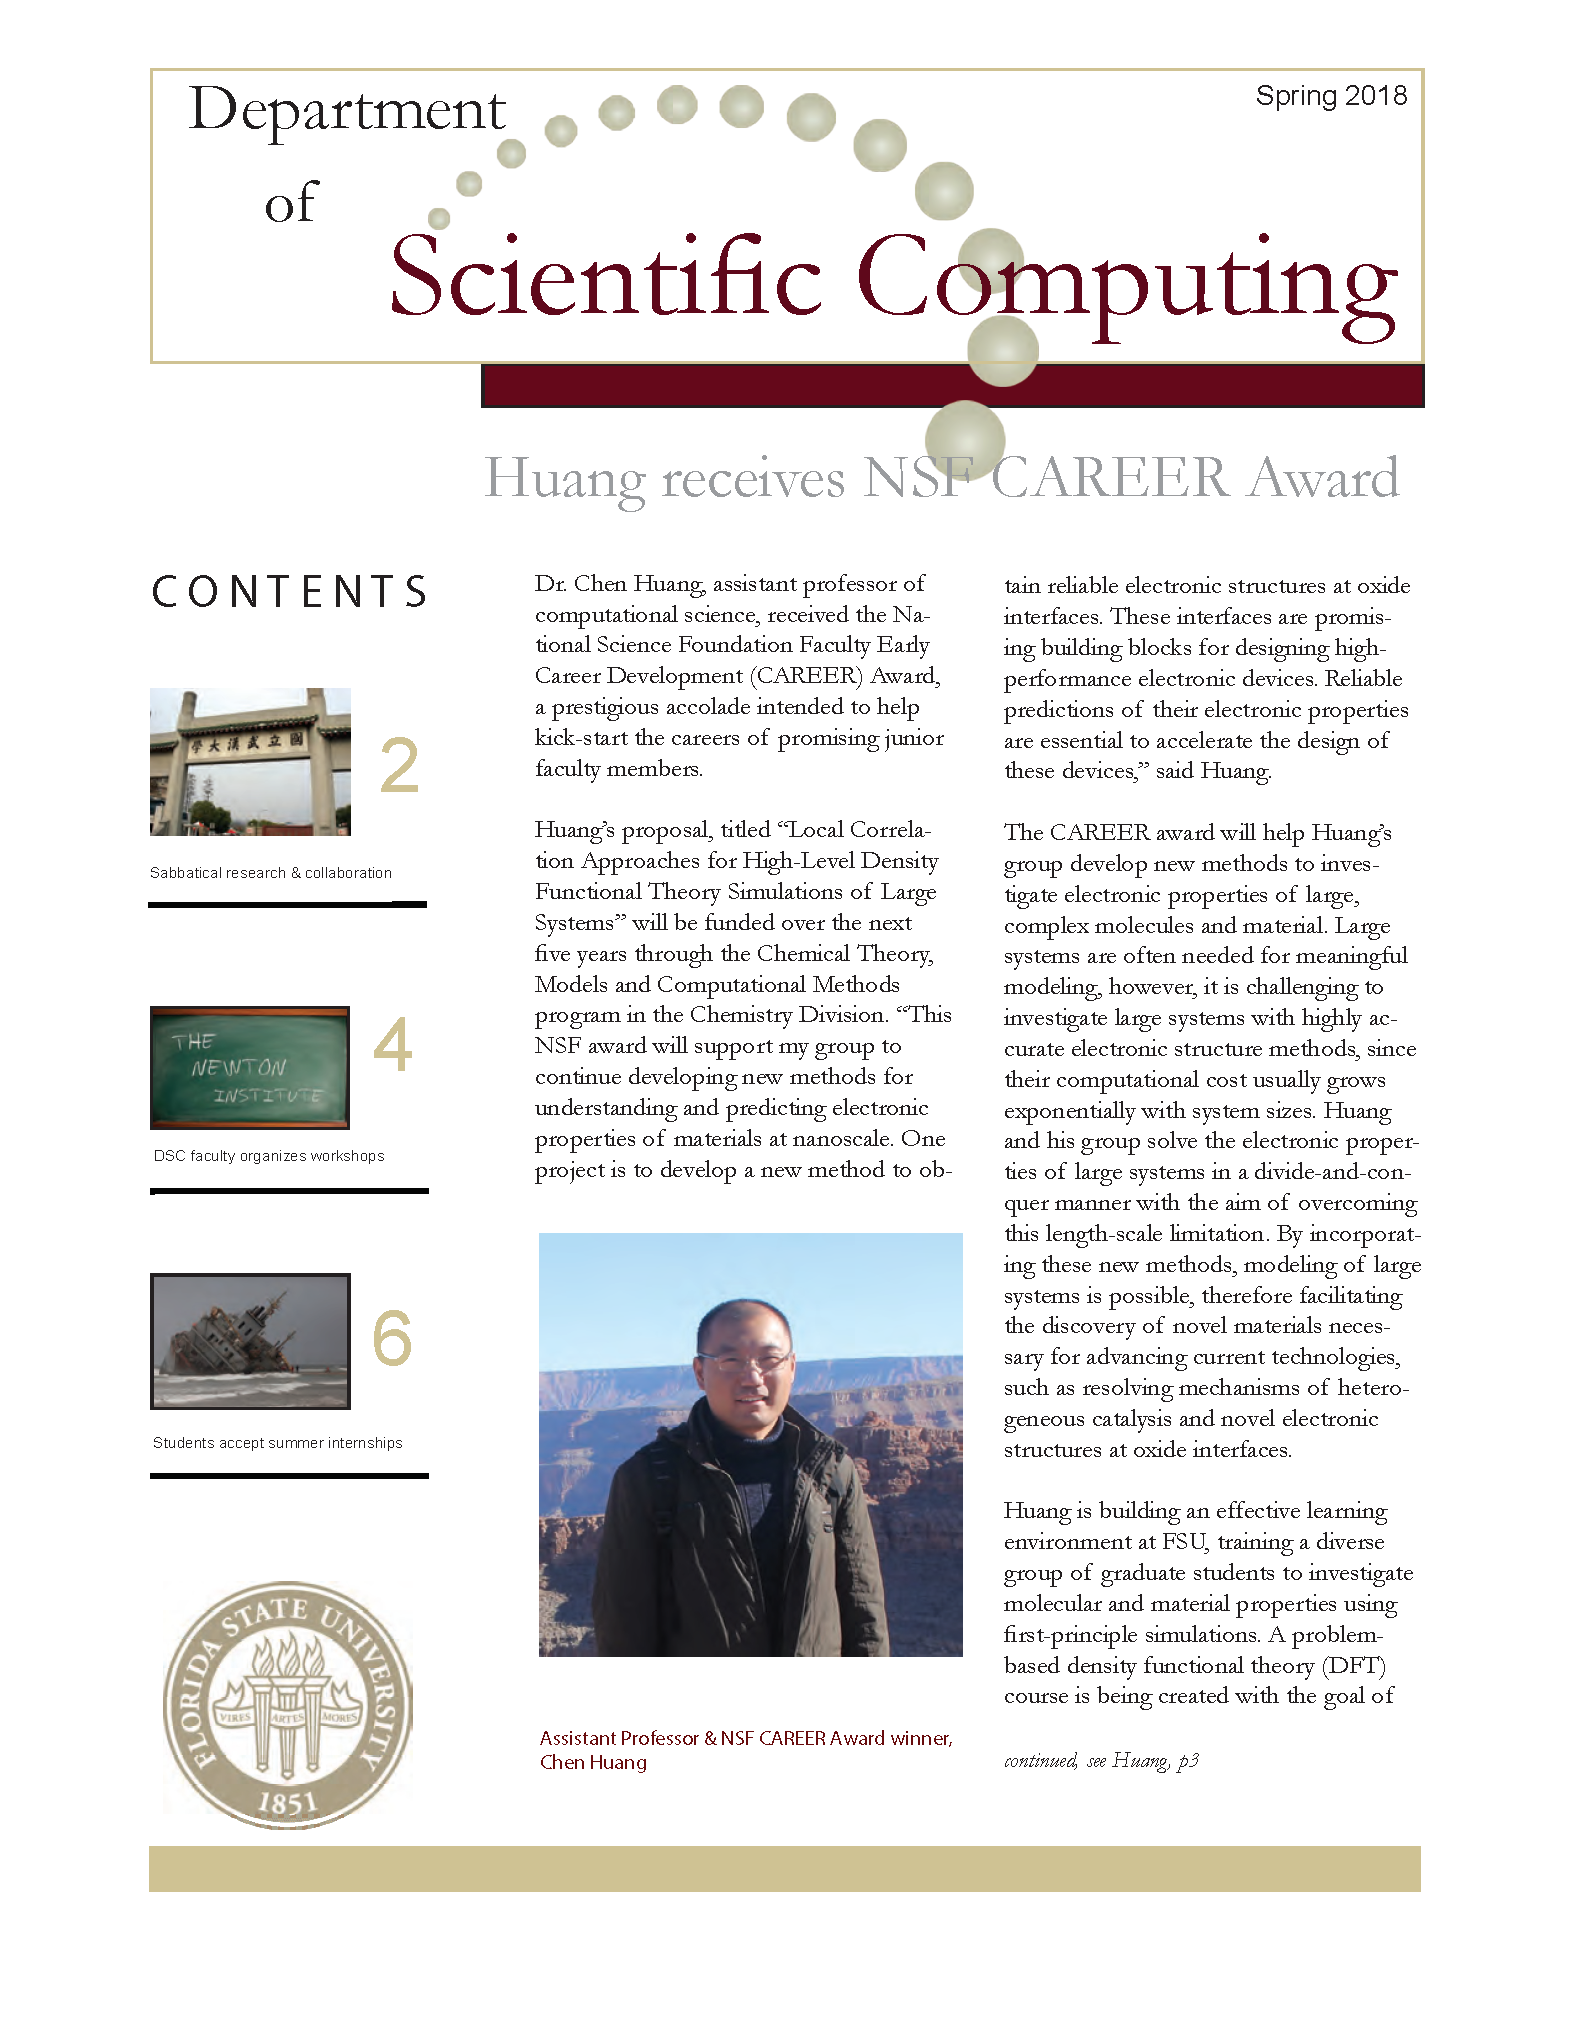 Spring 2018 - Department of Scientific Computing